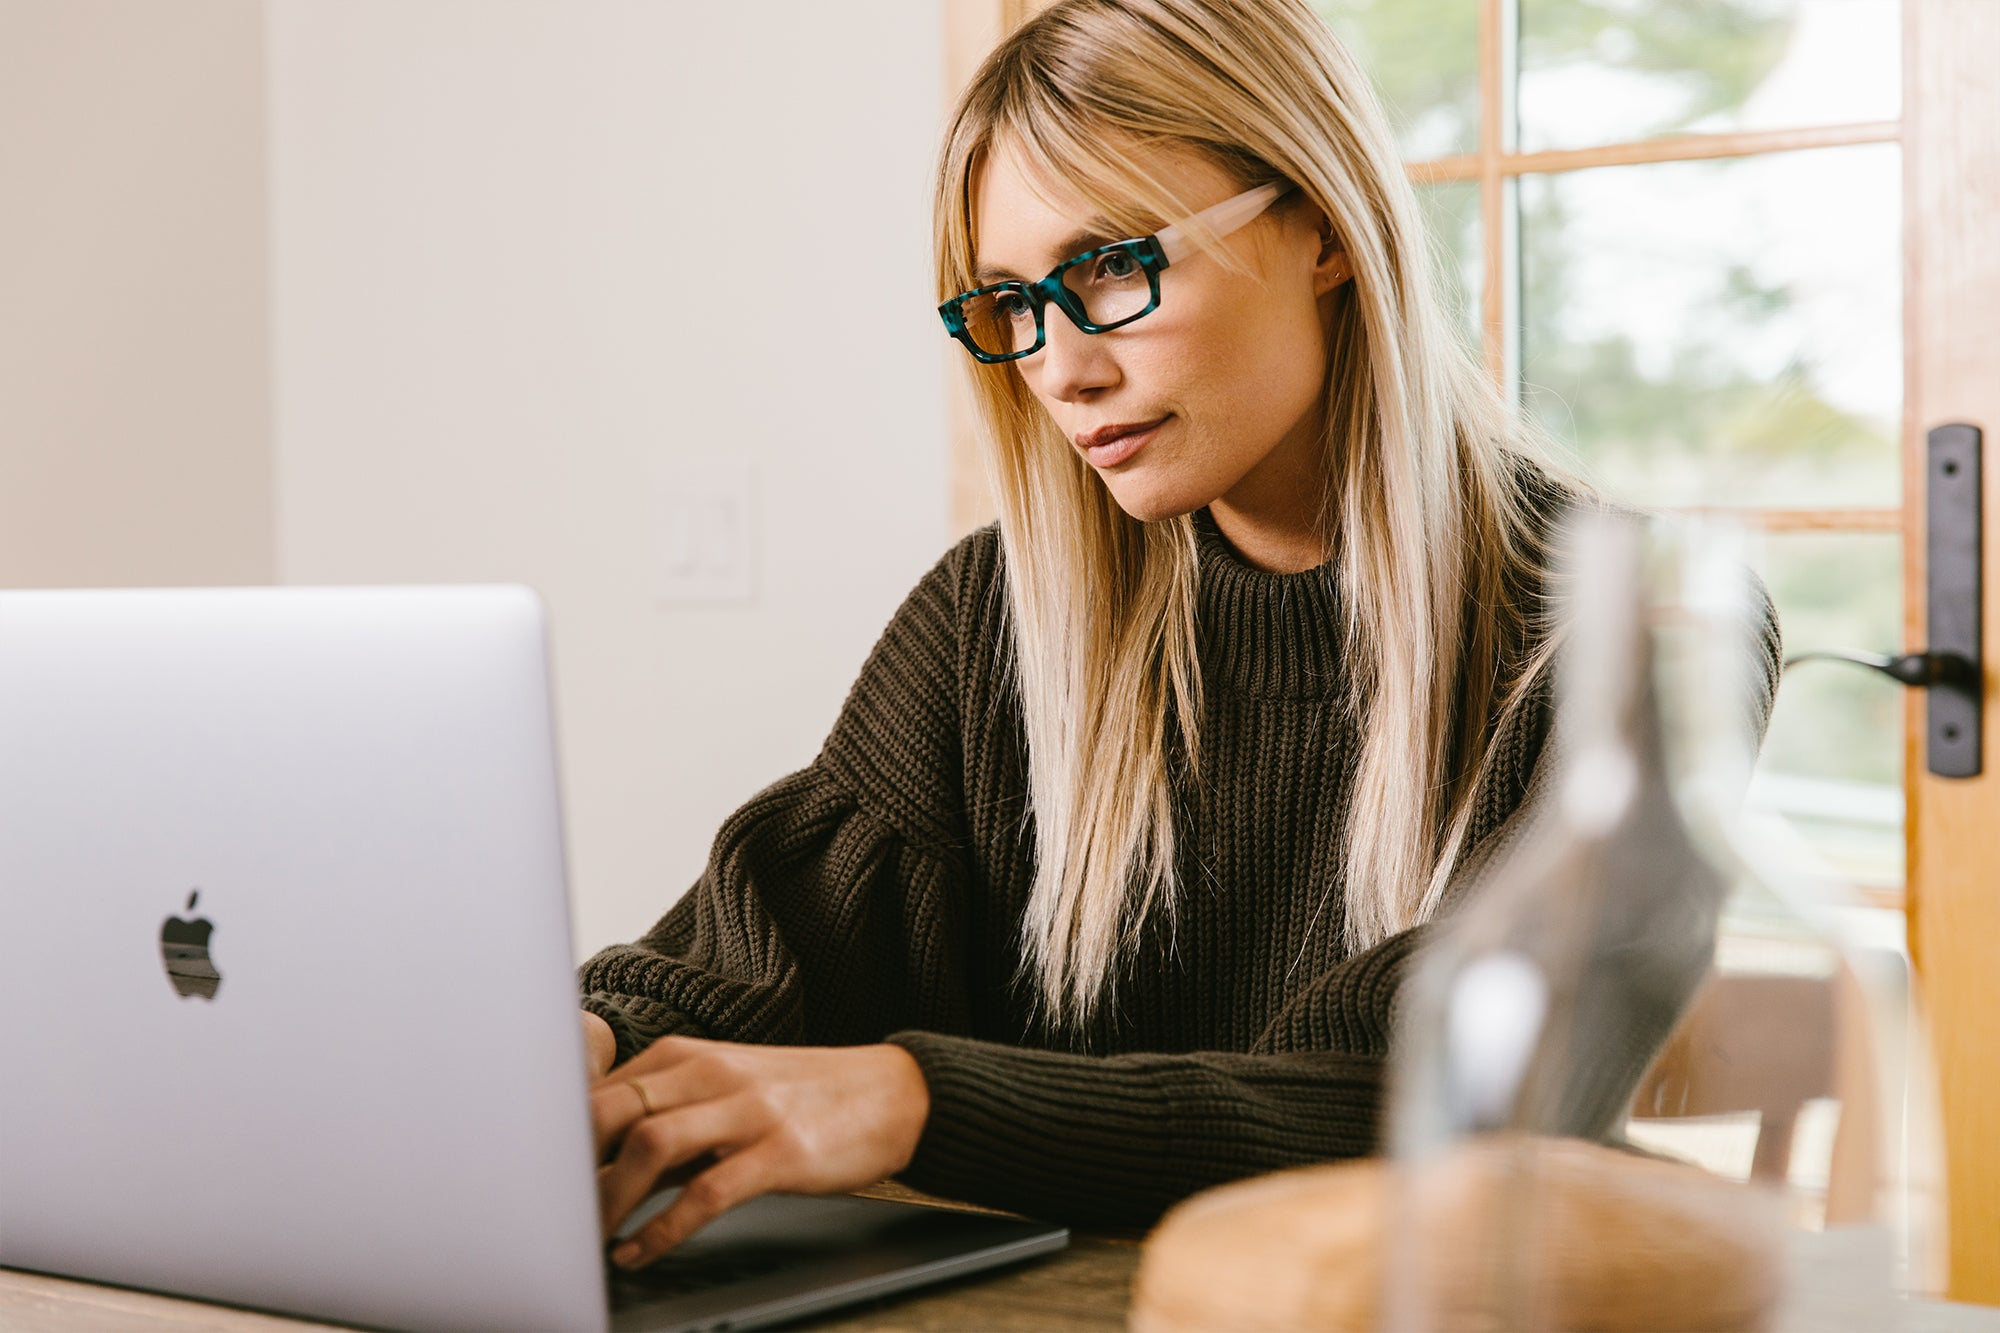 Woman wearing Peepers blue light reading glasses while working on laptop